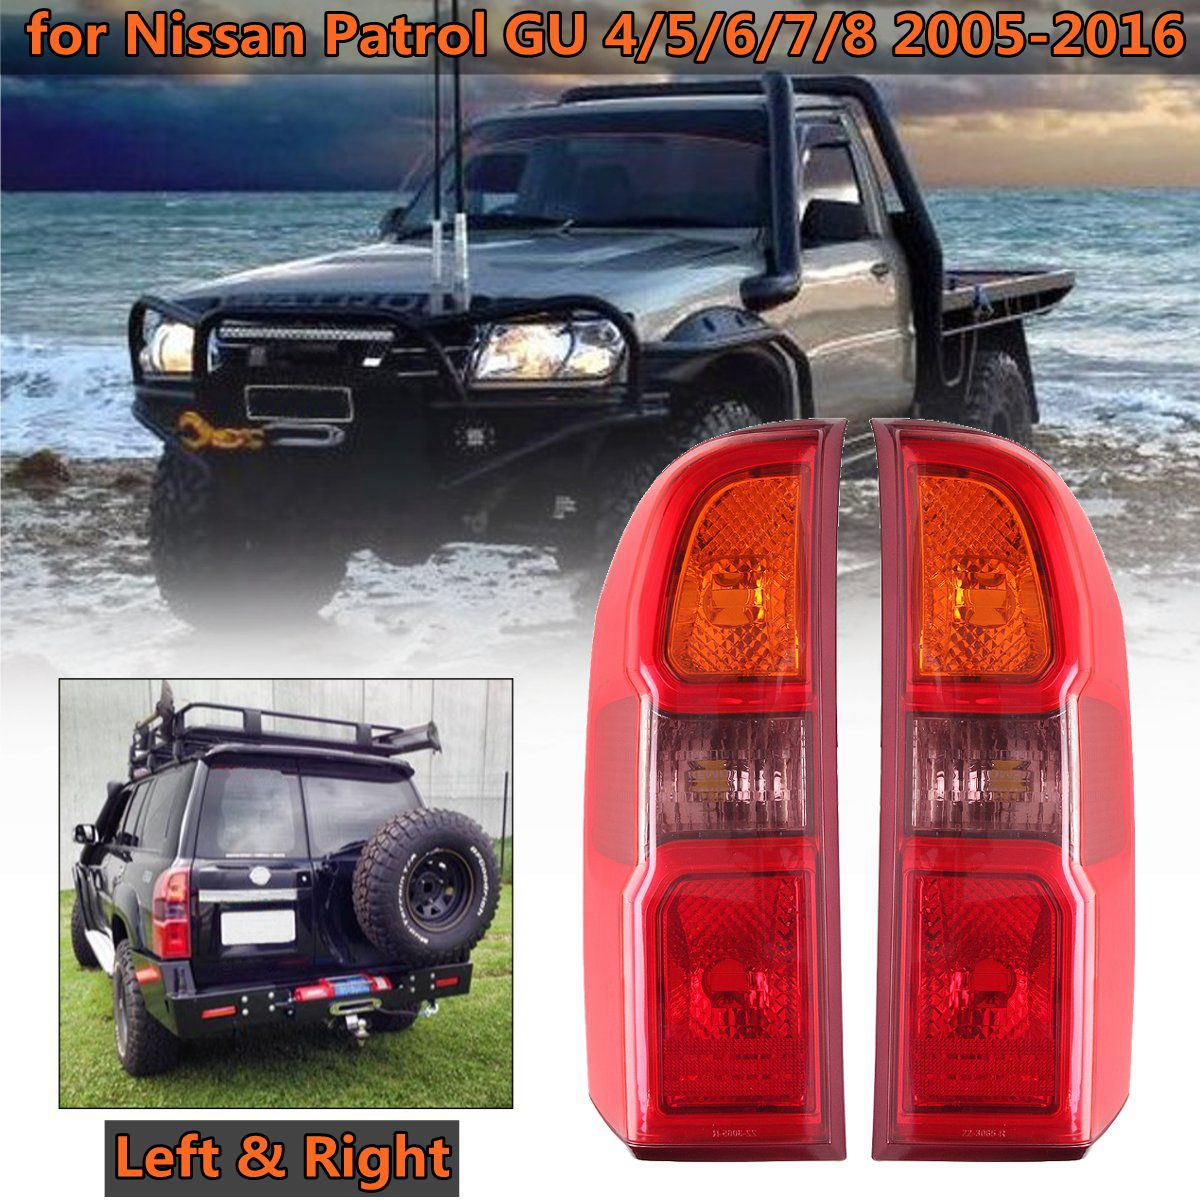 Rear Driver Passenger Side Tail Light Brake Lamp For Nissan Patrol GU 4/5/6/7/8 2005 2006 2007 2008 2009 2010 2011 2012~2016 brake lamp rear driver passenger side tail light for nissan patrol gu 4 5 6 7 8 2005 2006 2007 2008 2009 2010 2011 2012 2016